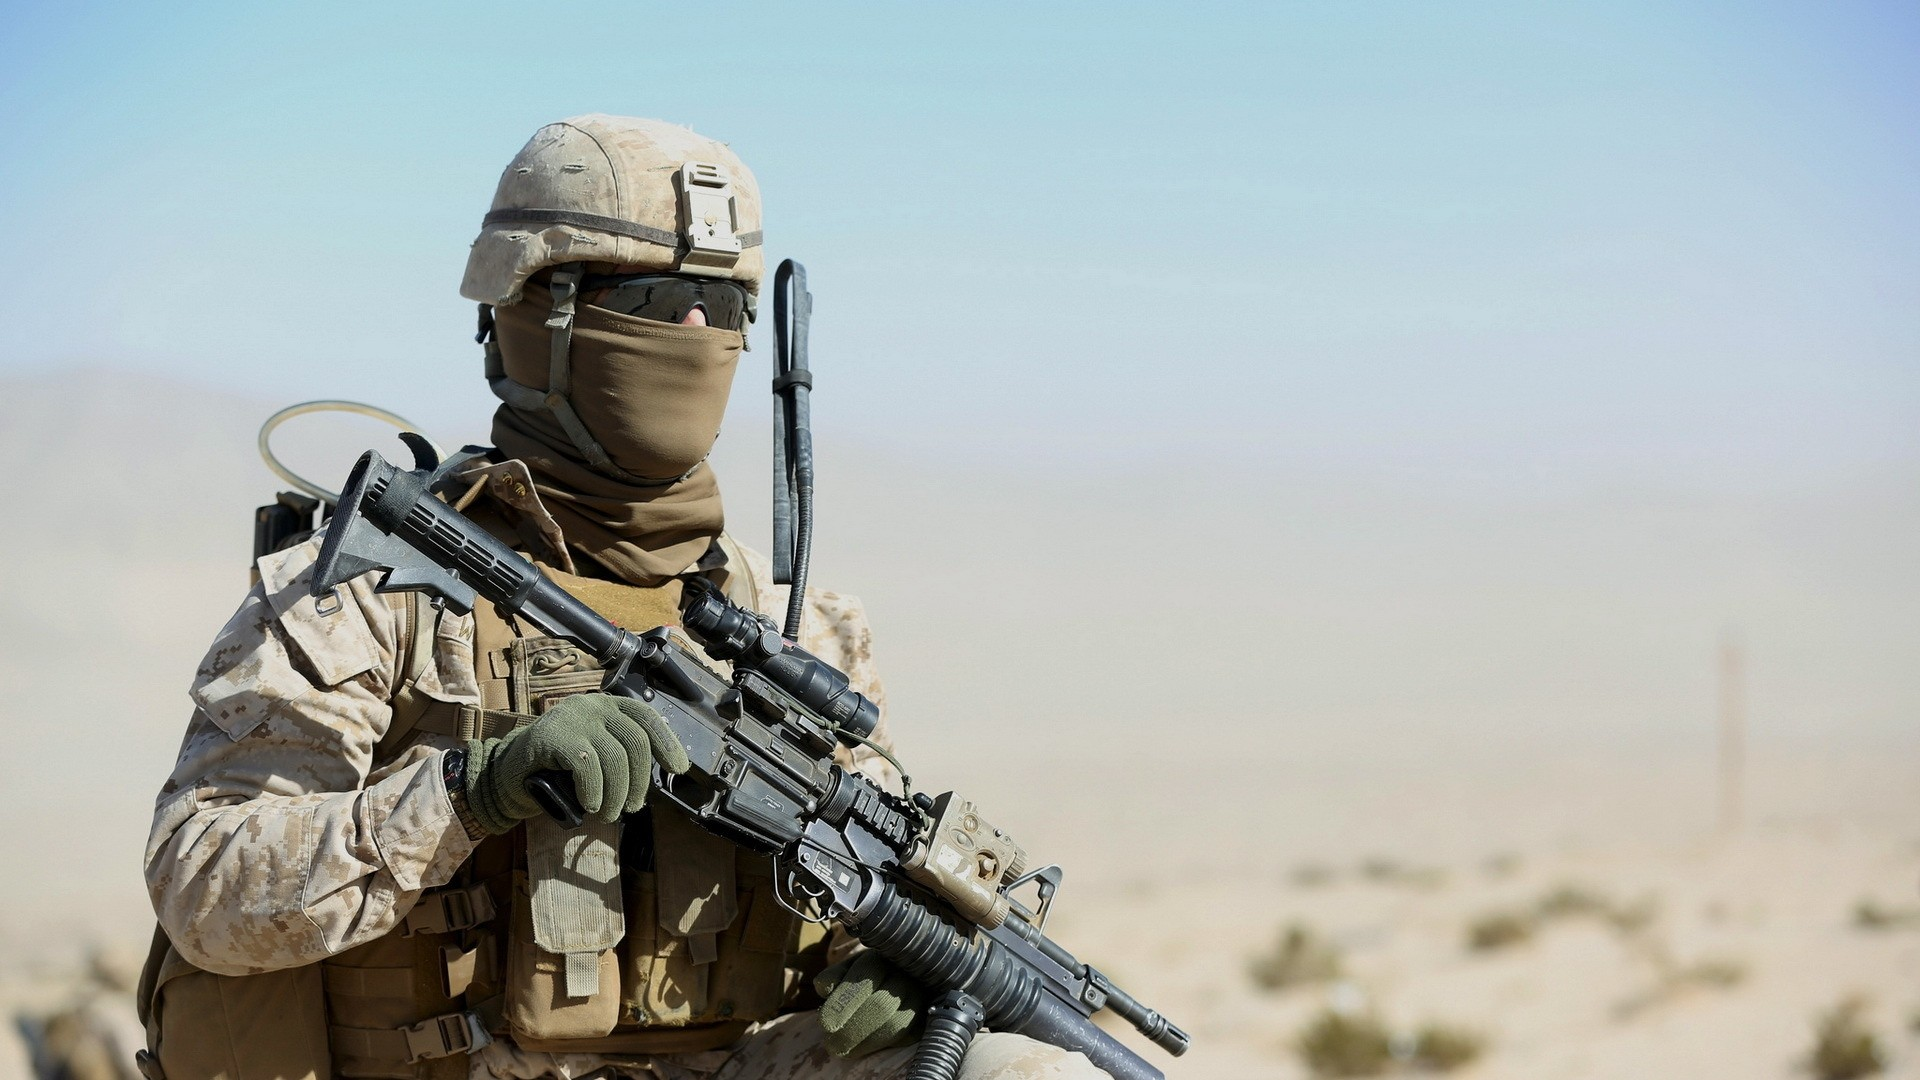 Army Wallpaper Collection For Free Download | HD Wallpapers | Pinterest | Army  wallpaper and Wallpaper